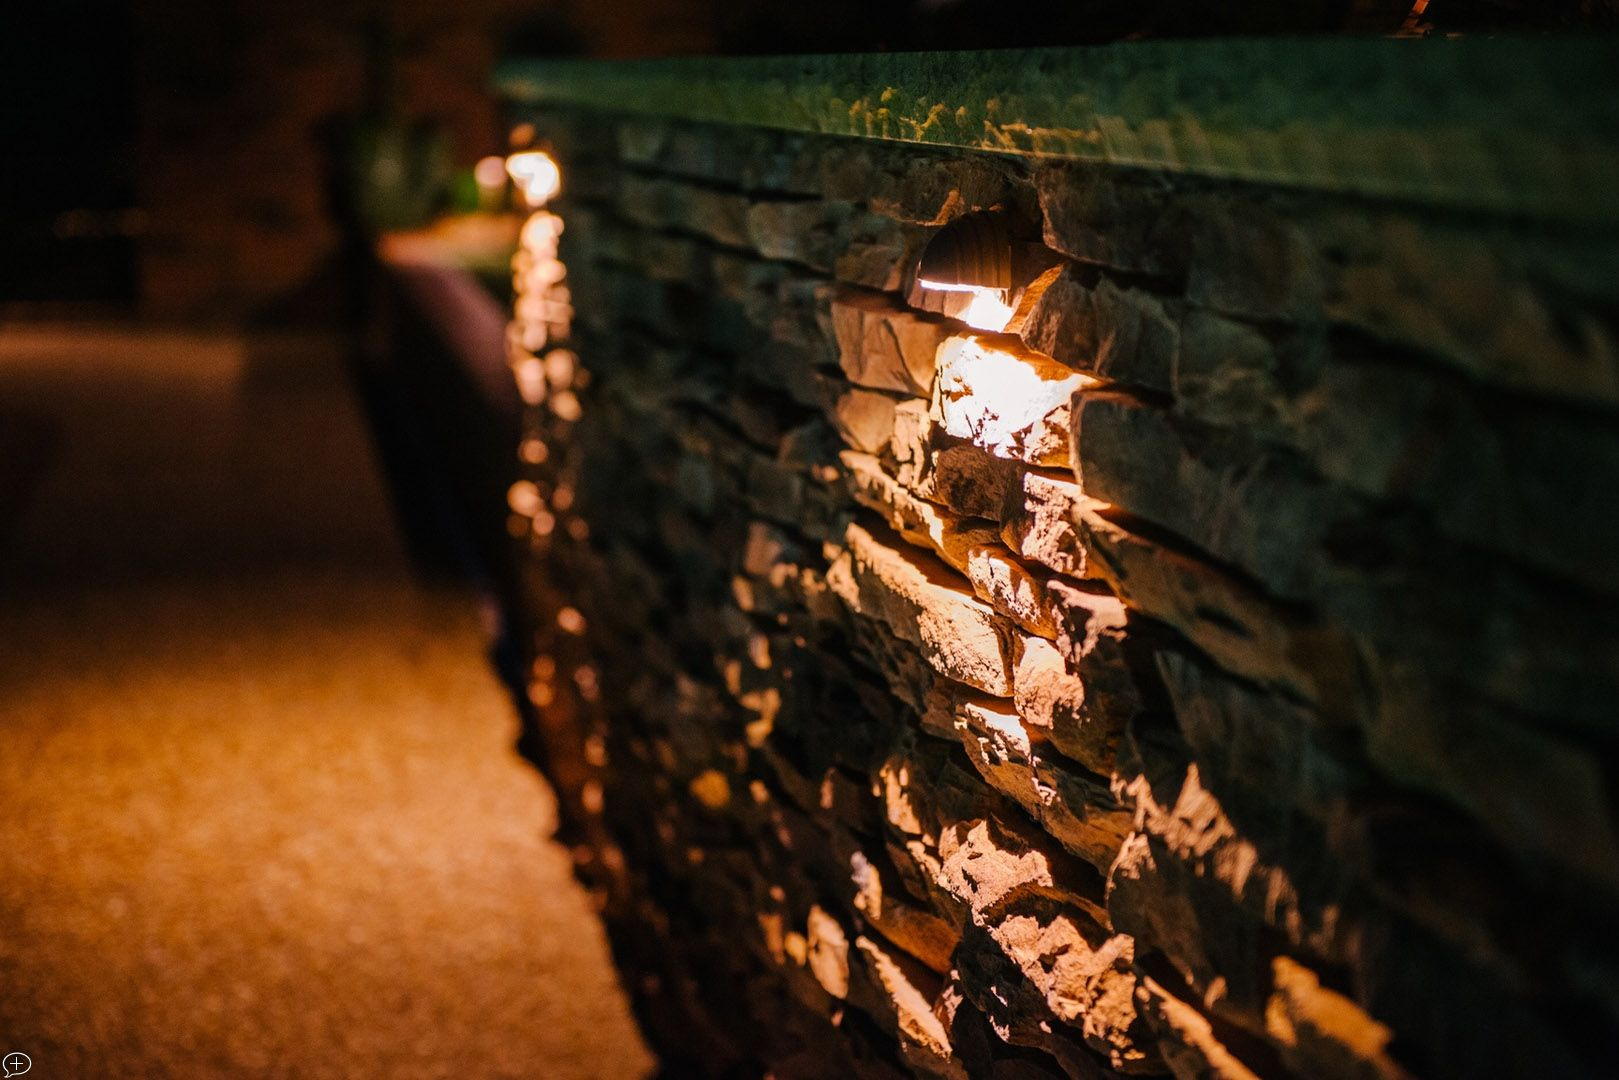 Wall wash lighting is a perfect way to illuminate patios with